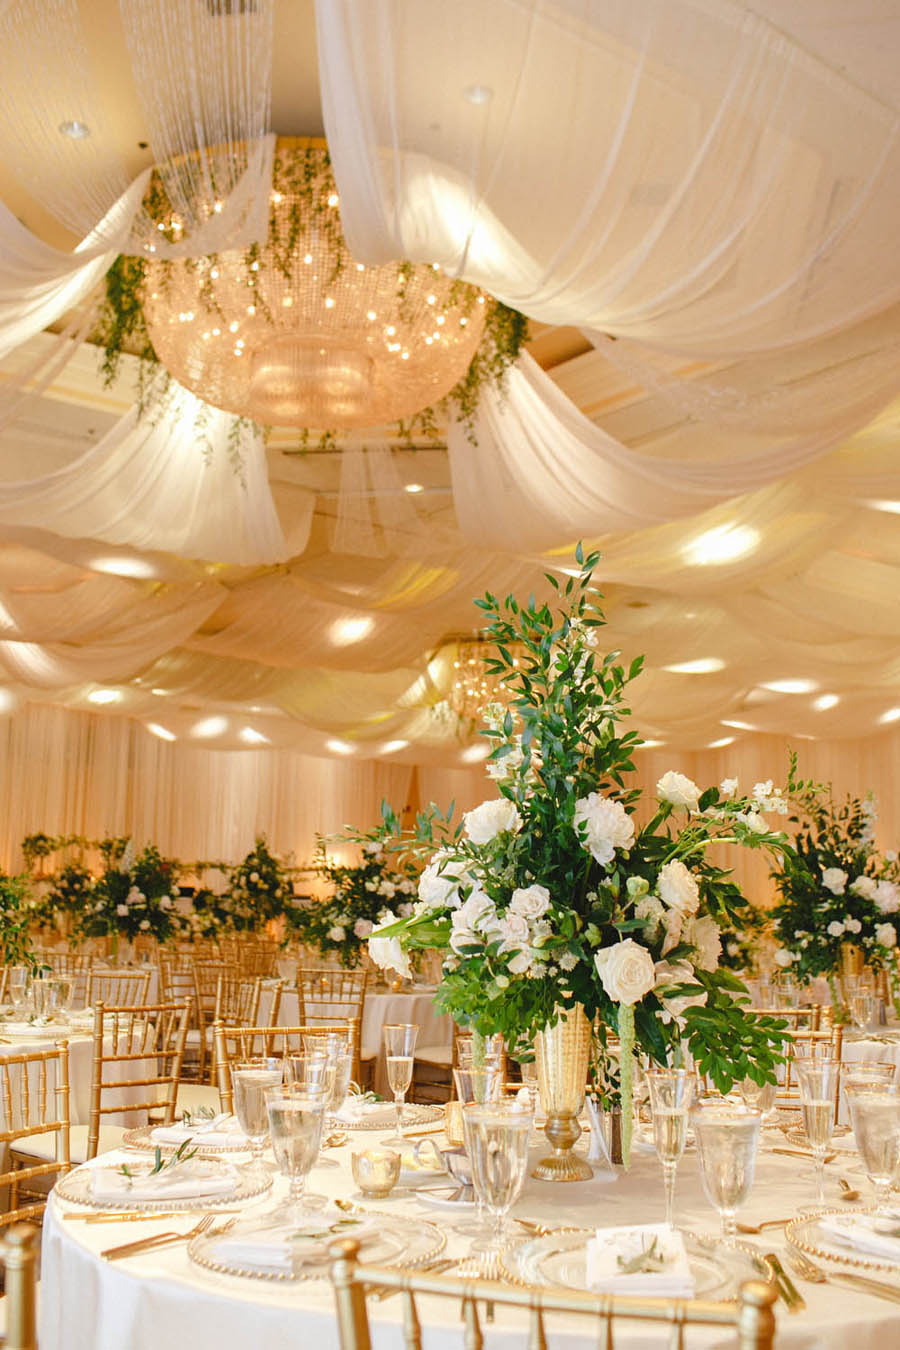 White and Greenery Ballroom Wedding Reception with Tall White Floral and Greenery Centerpiece in Gold Vase with Gold Chiavari Chairs | White Ceiling Draping by Tampa Bay Gabro Event Services | Tarpon Springs Wedding Venue Inverness Hall at Innisbrook Resort